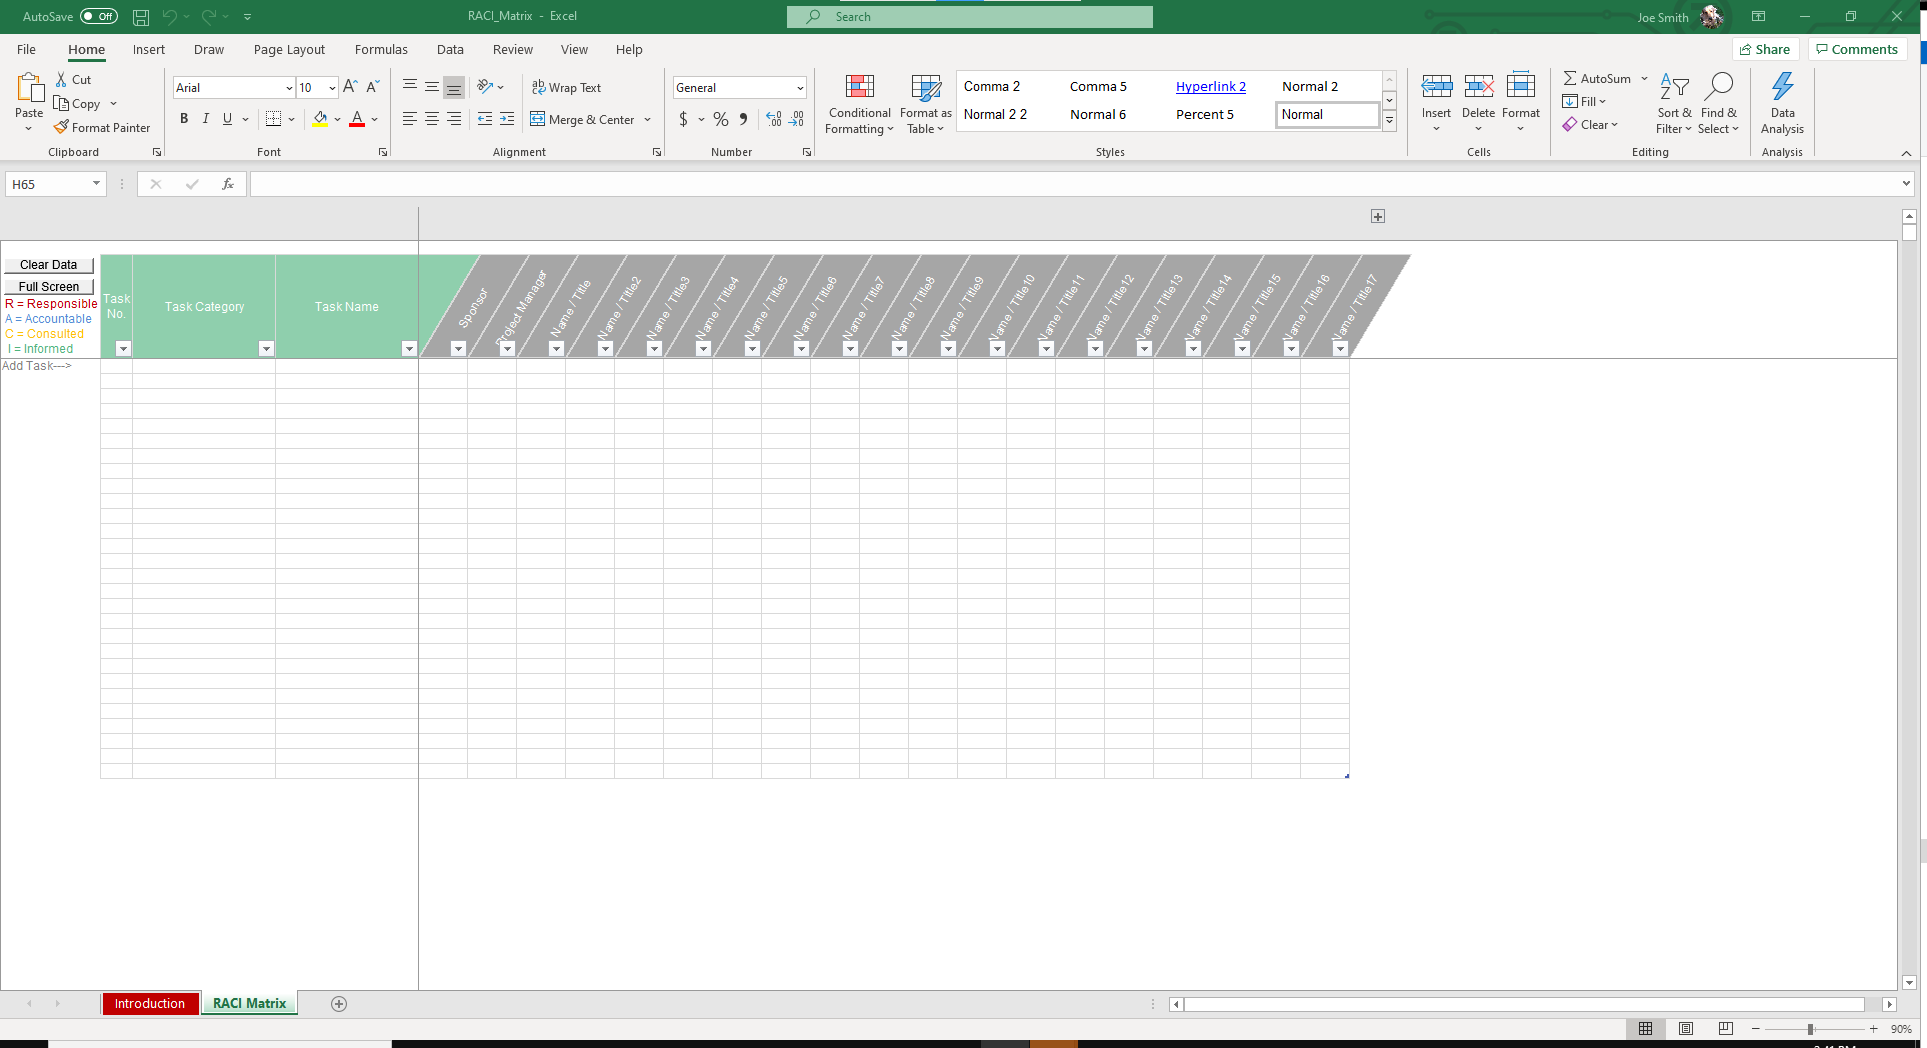 In the RACI Matrix sheet you can input employees name and insert the corresponding letter to their role - R, A, C or I